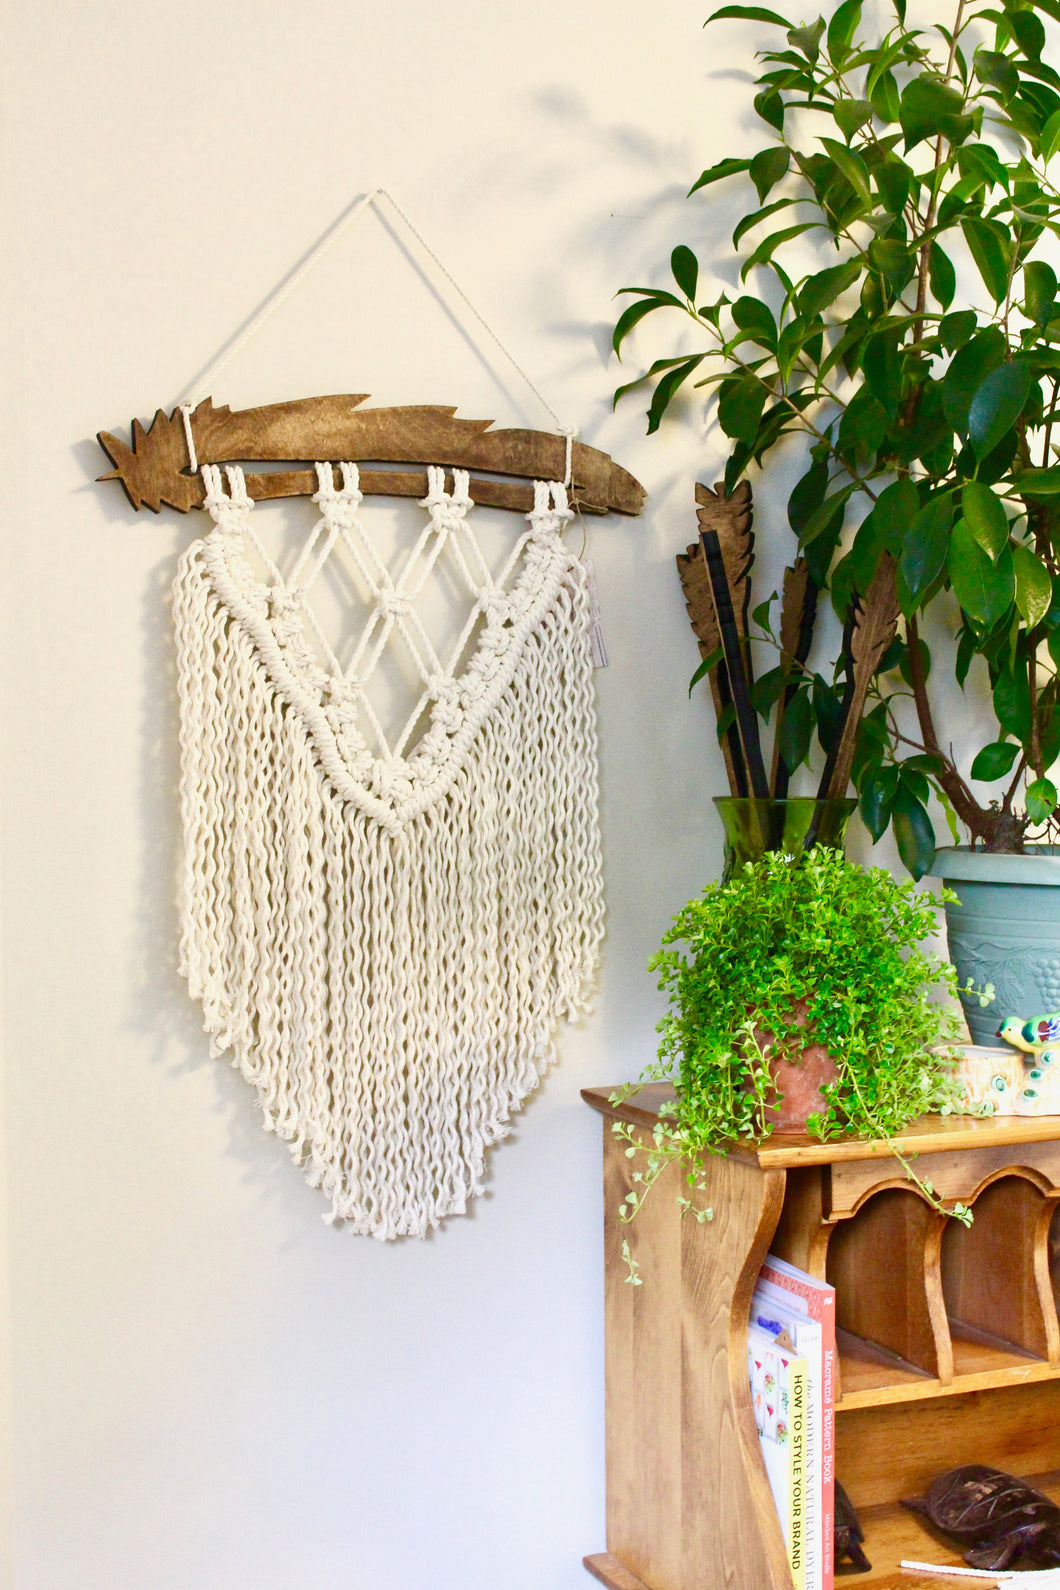 Heather / Boho Feather Macrame Wall Hanging